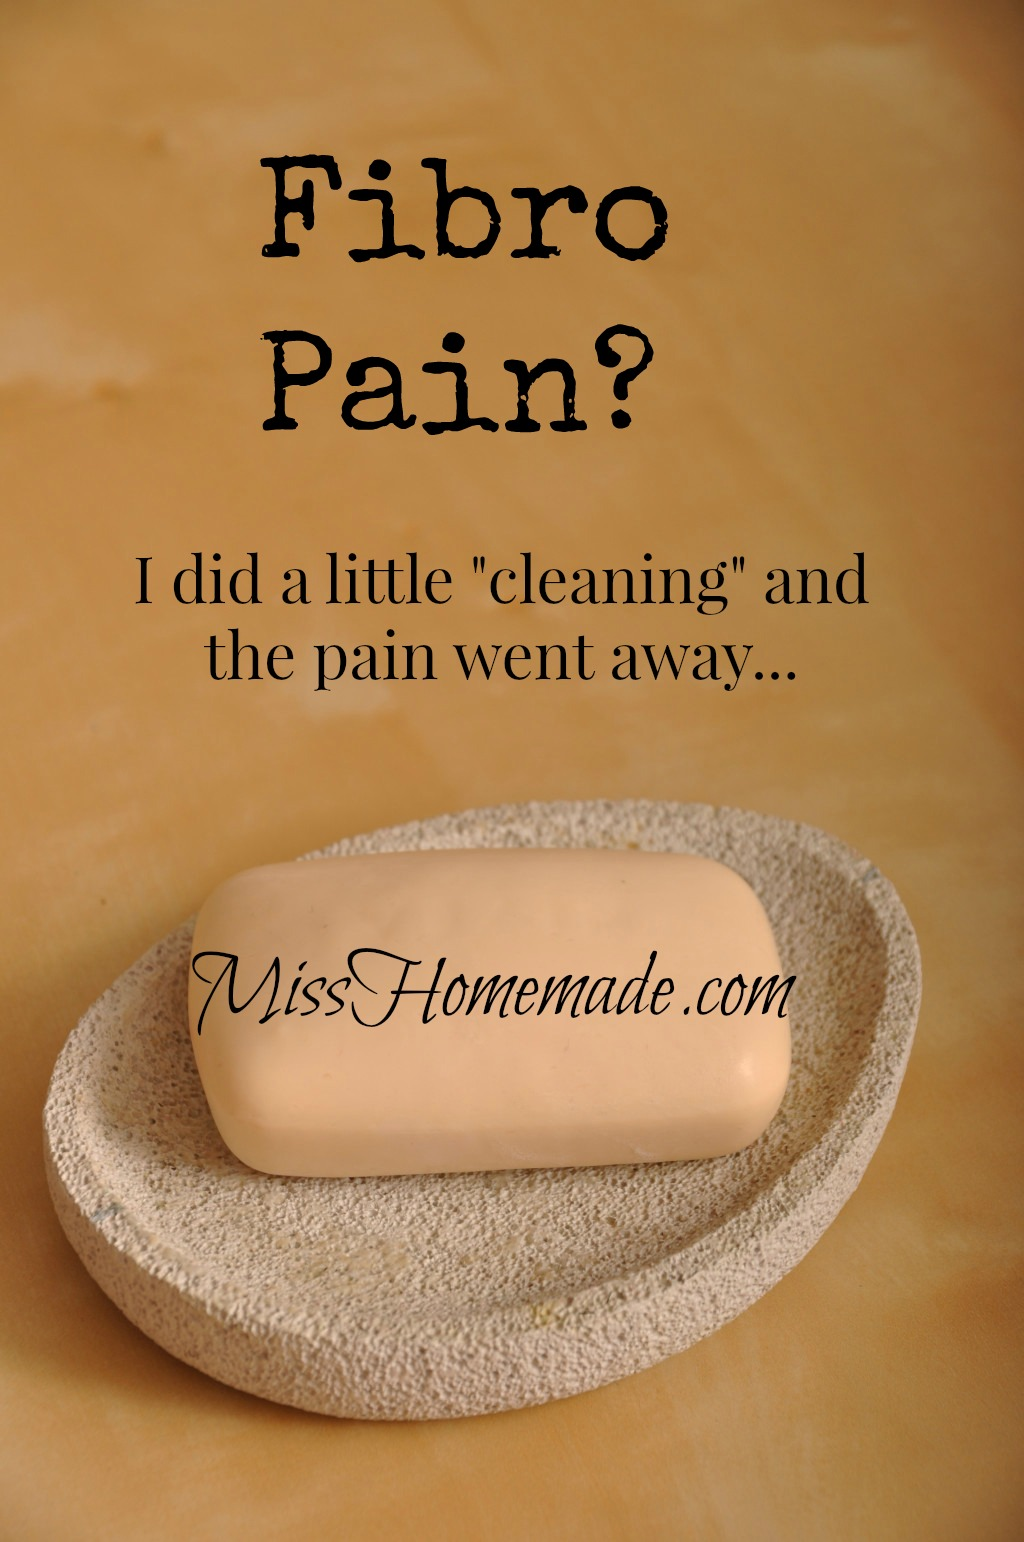 If you have Fibromyalgia pain, you need to try my toxin cleanse - no fasting.